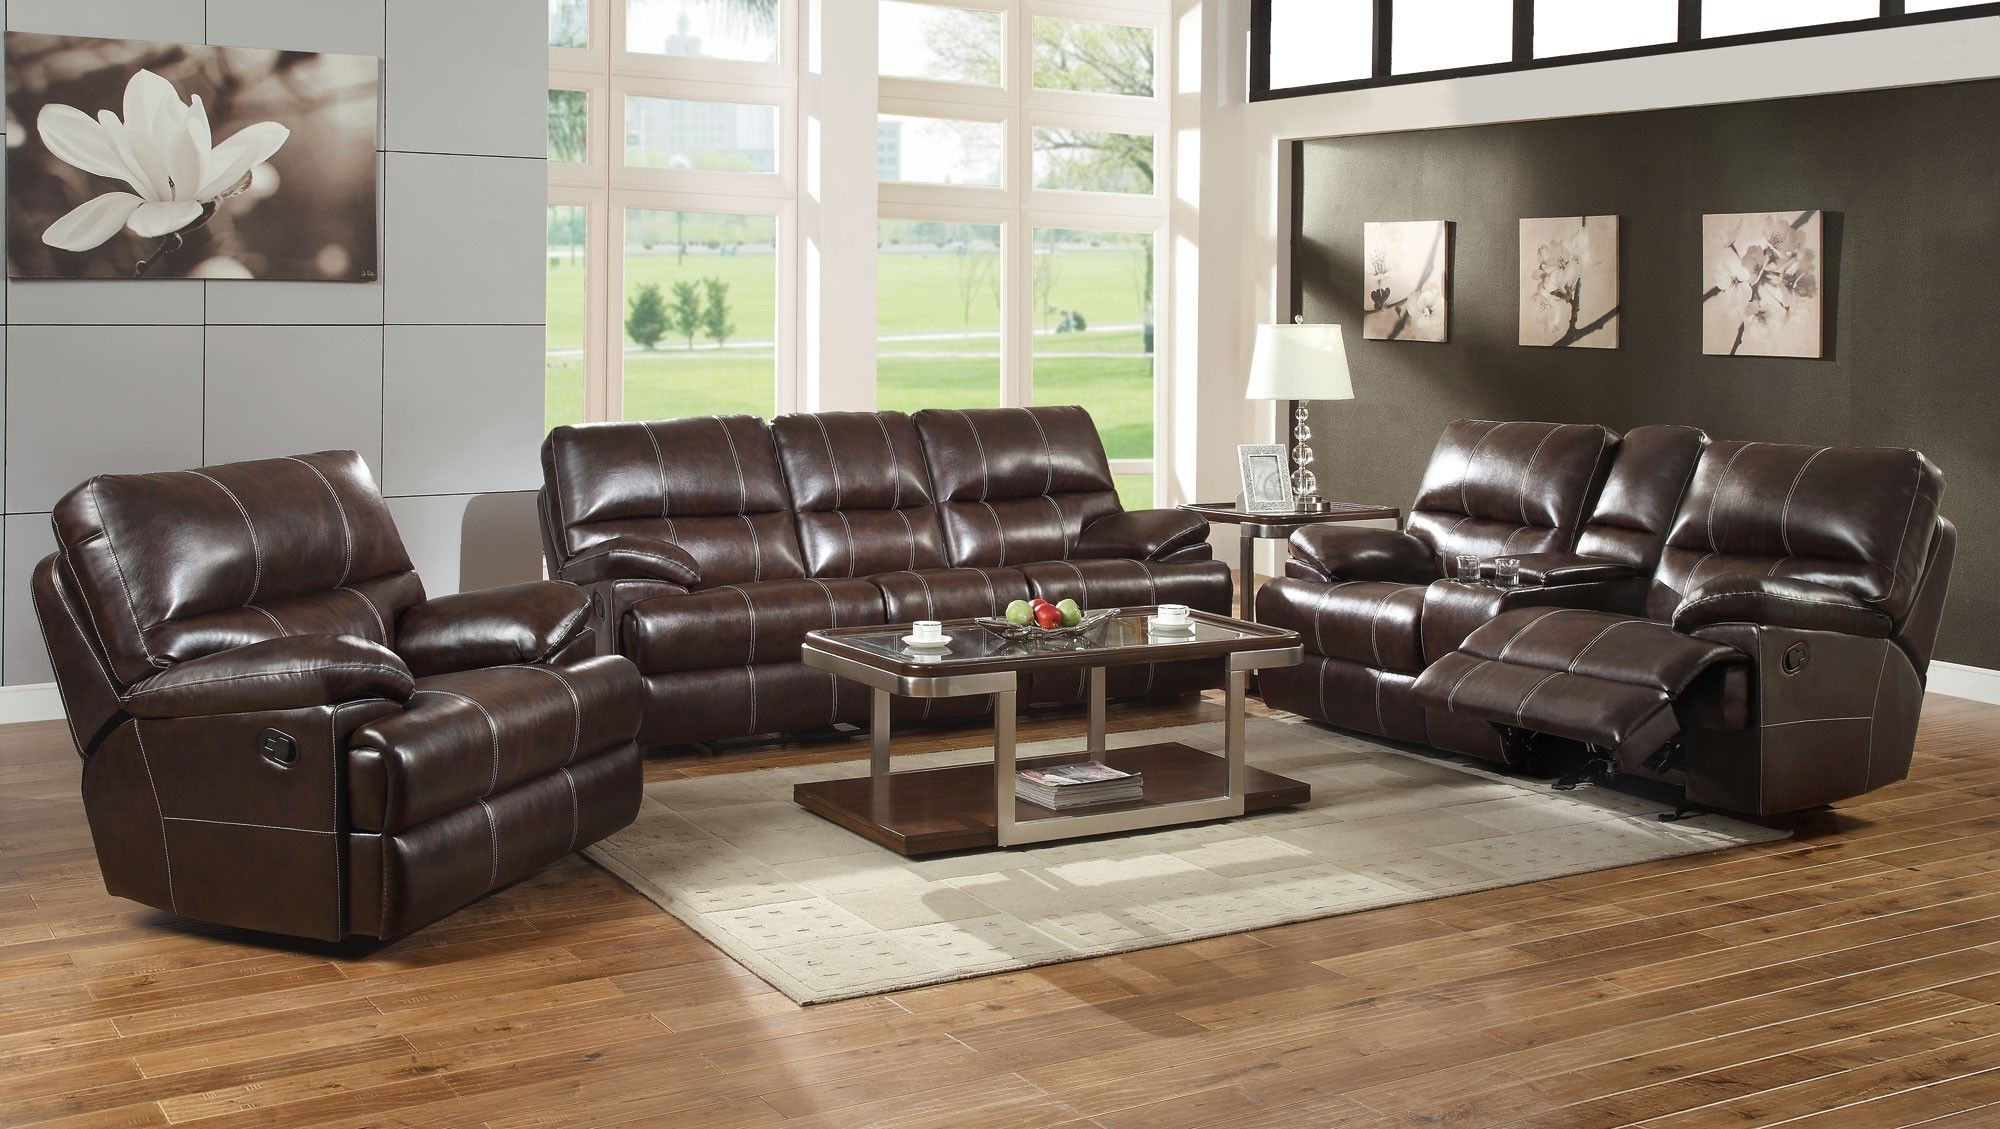 Attractive Luxury Black Sofa From Modern Living Room Ideas 600x400 Modern Living Room  Ideas | Modern Living Room Ideas | Pinterest | Room Ideas, Living Room  Ideas And ...